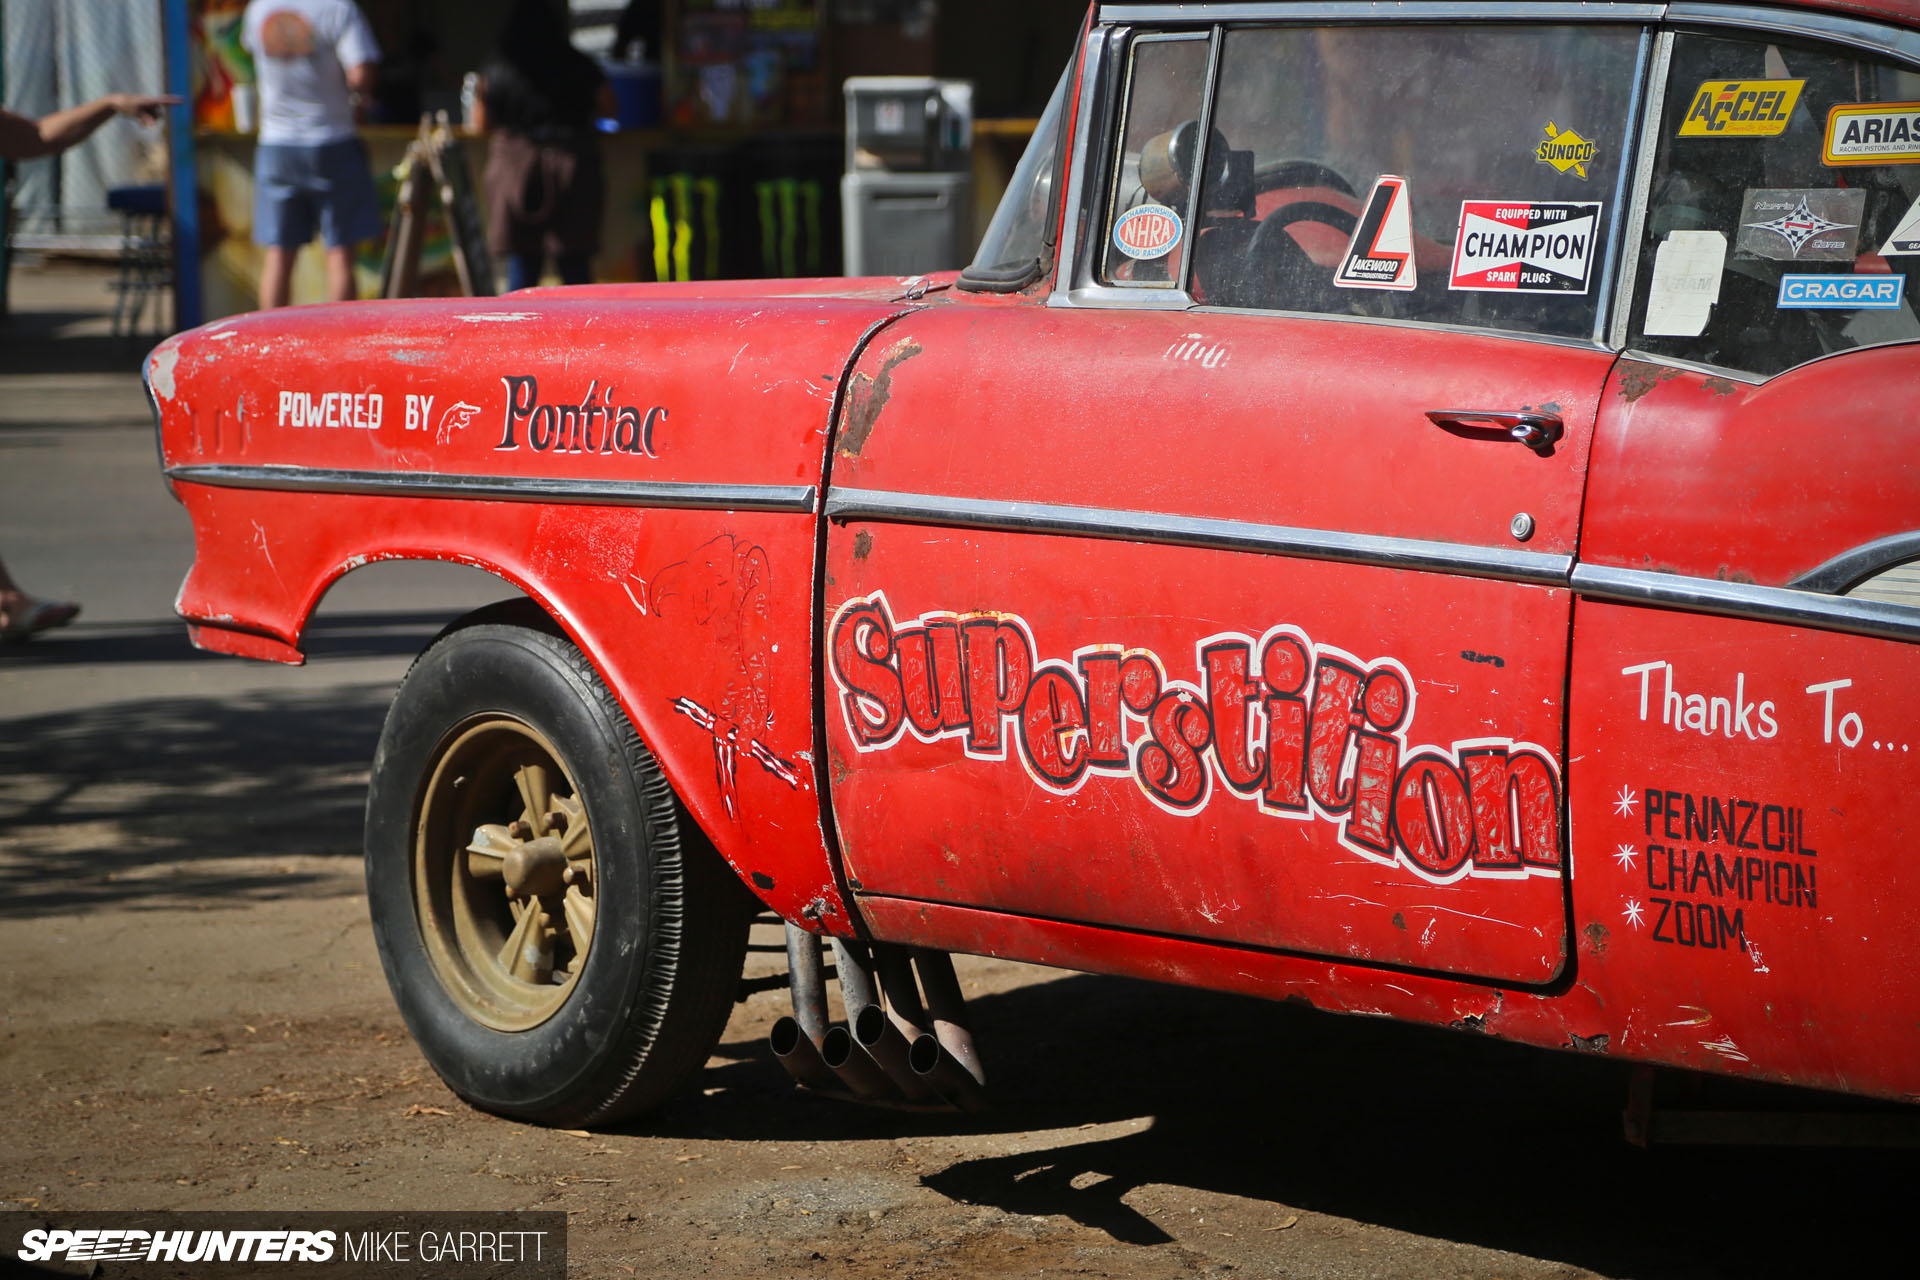 The Barn Find Racer Speedhunters